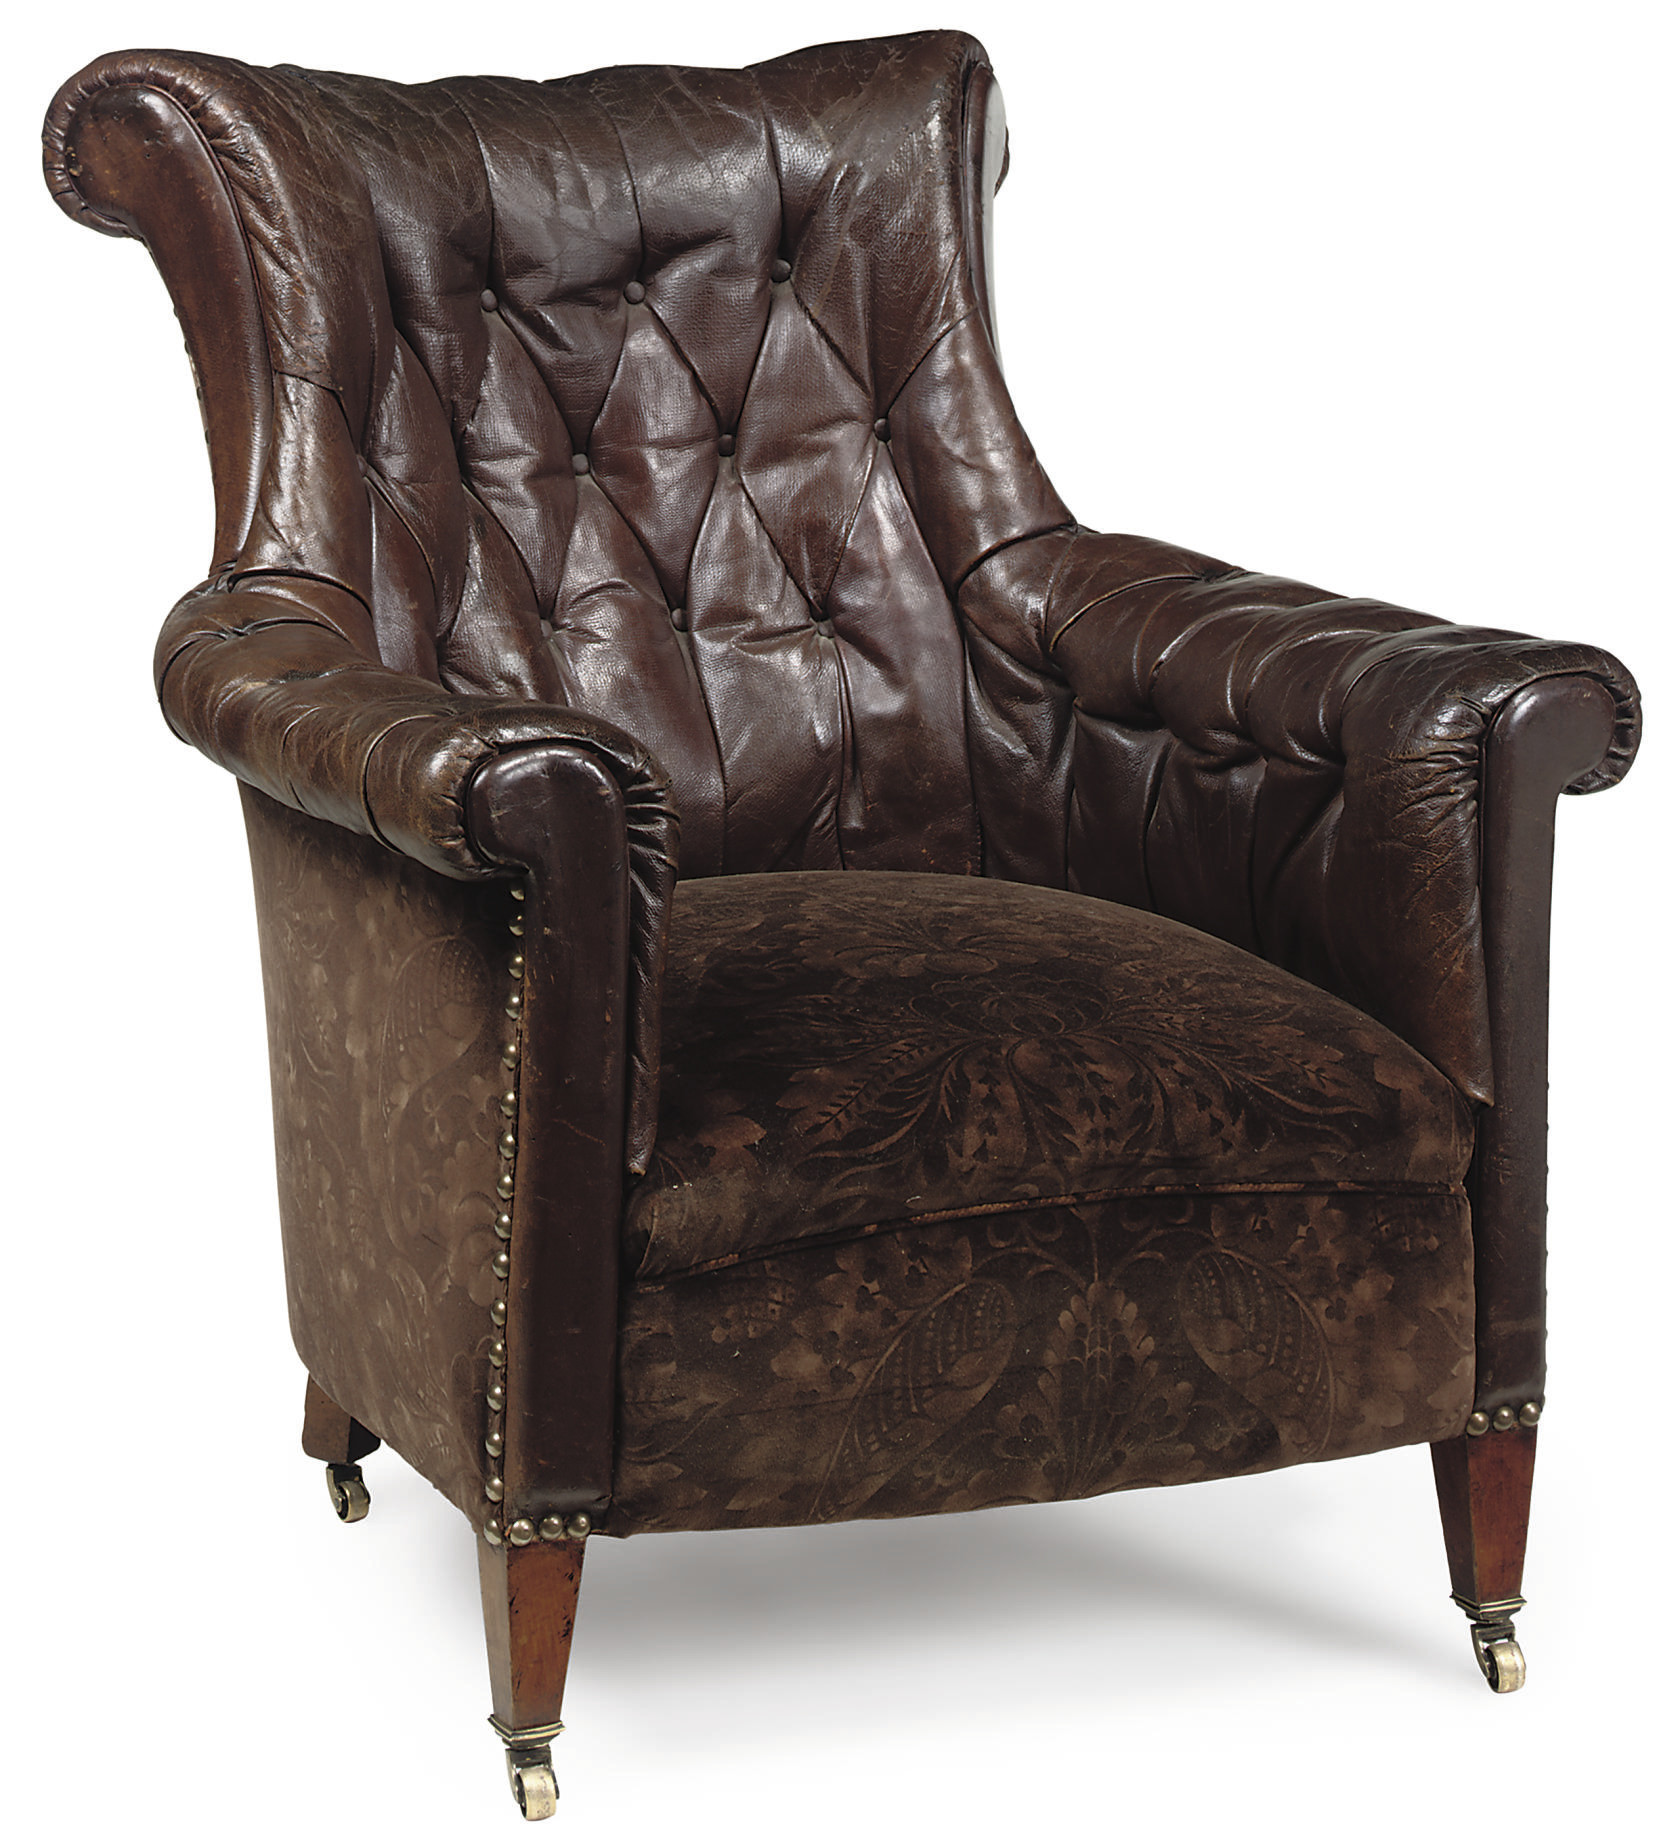 A FRENCH LEATHER ARMCHAIR